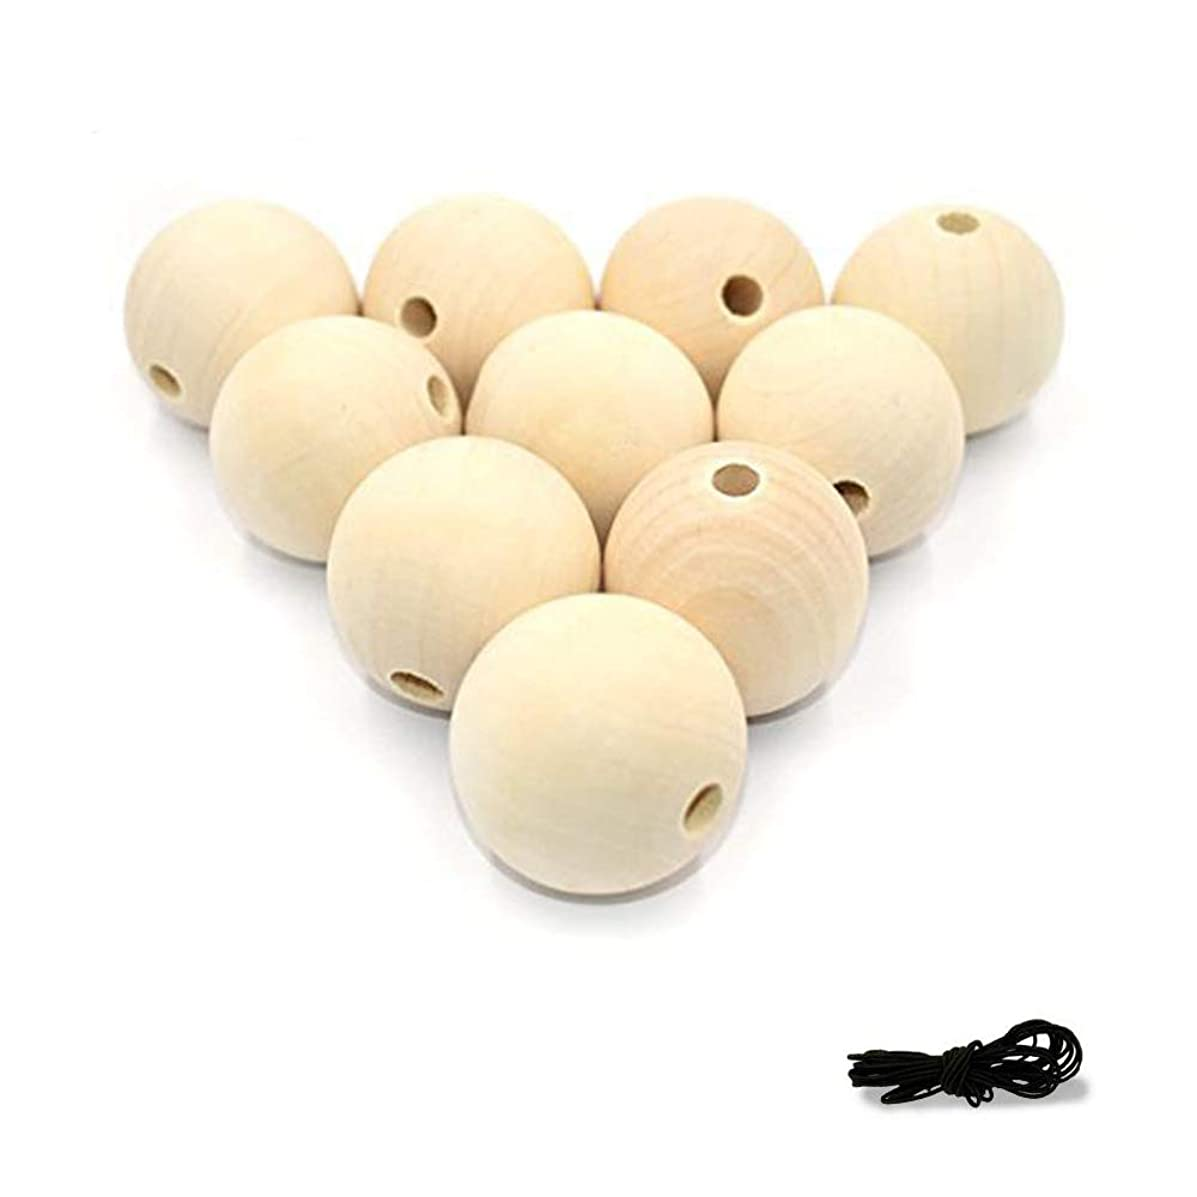 R.FLOWER Natural Wood Beads Round Ball Wooden Loose Beads Unfinished Wood Spacer Beads for Craft-making  10pcs (40mm)